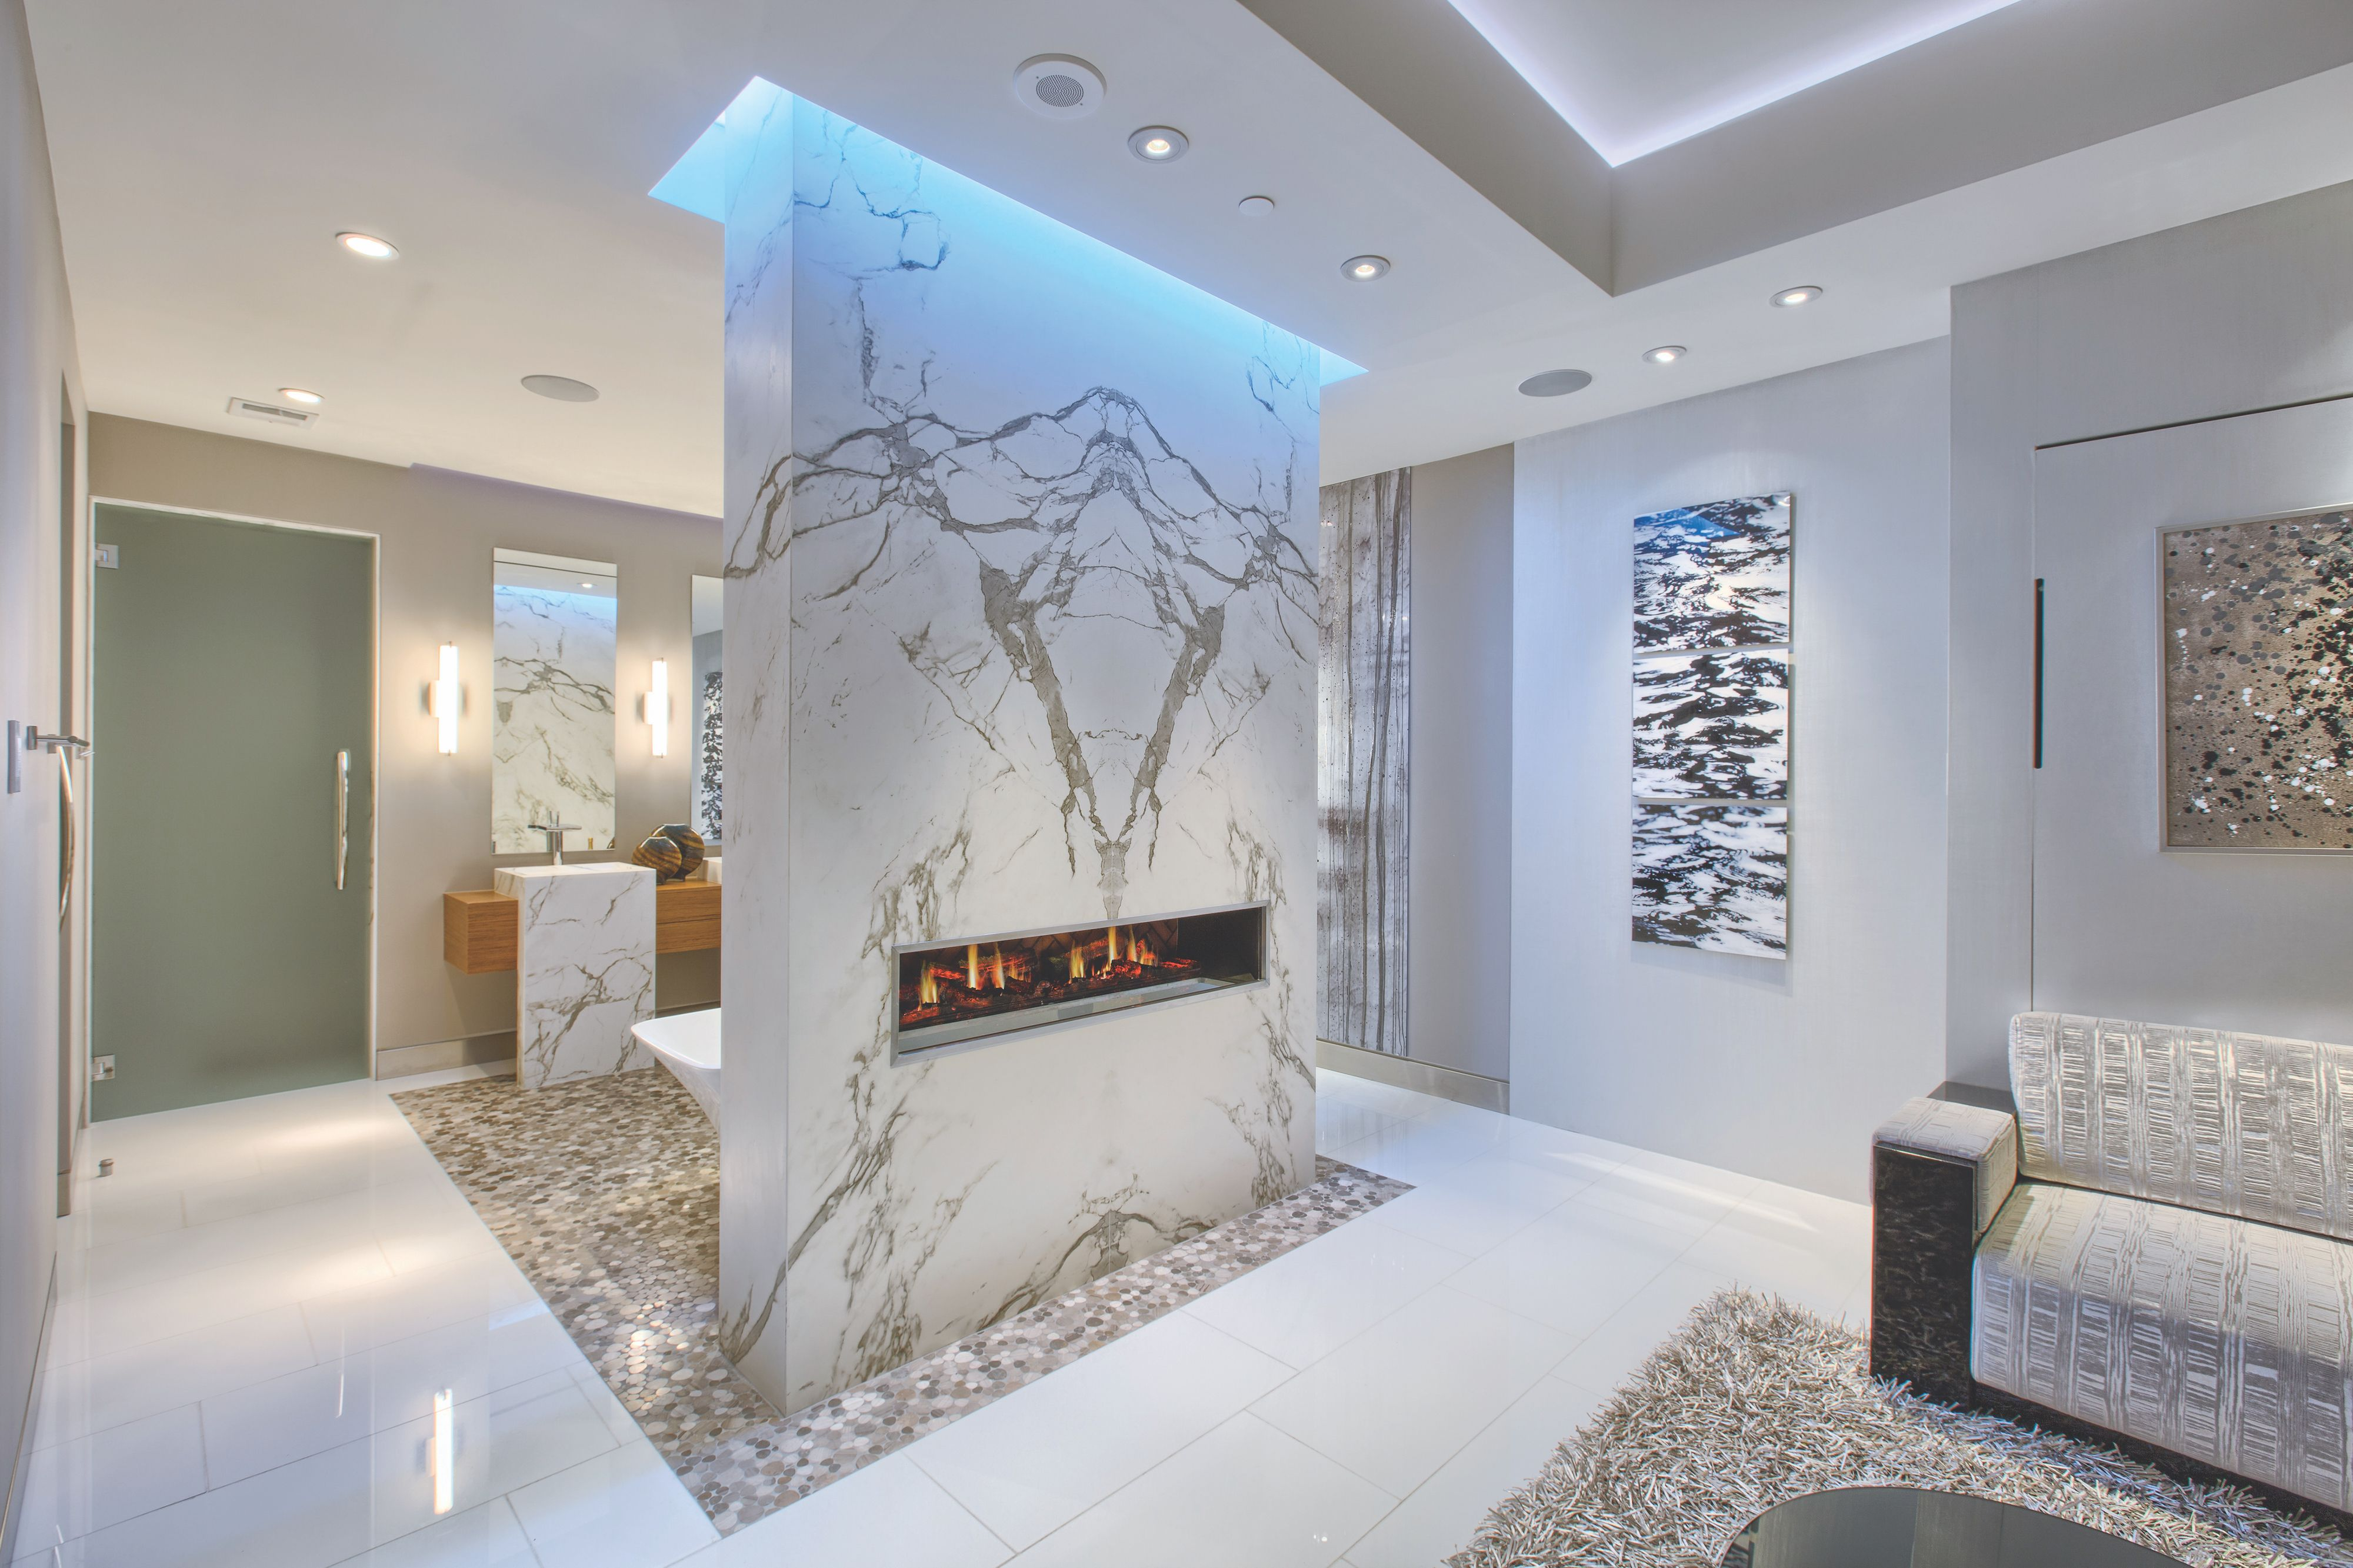 Every time we look at it, we love it even more! This Dekton